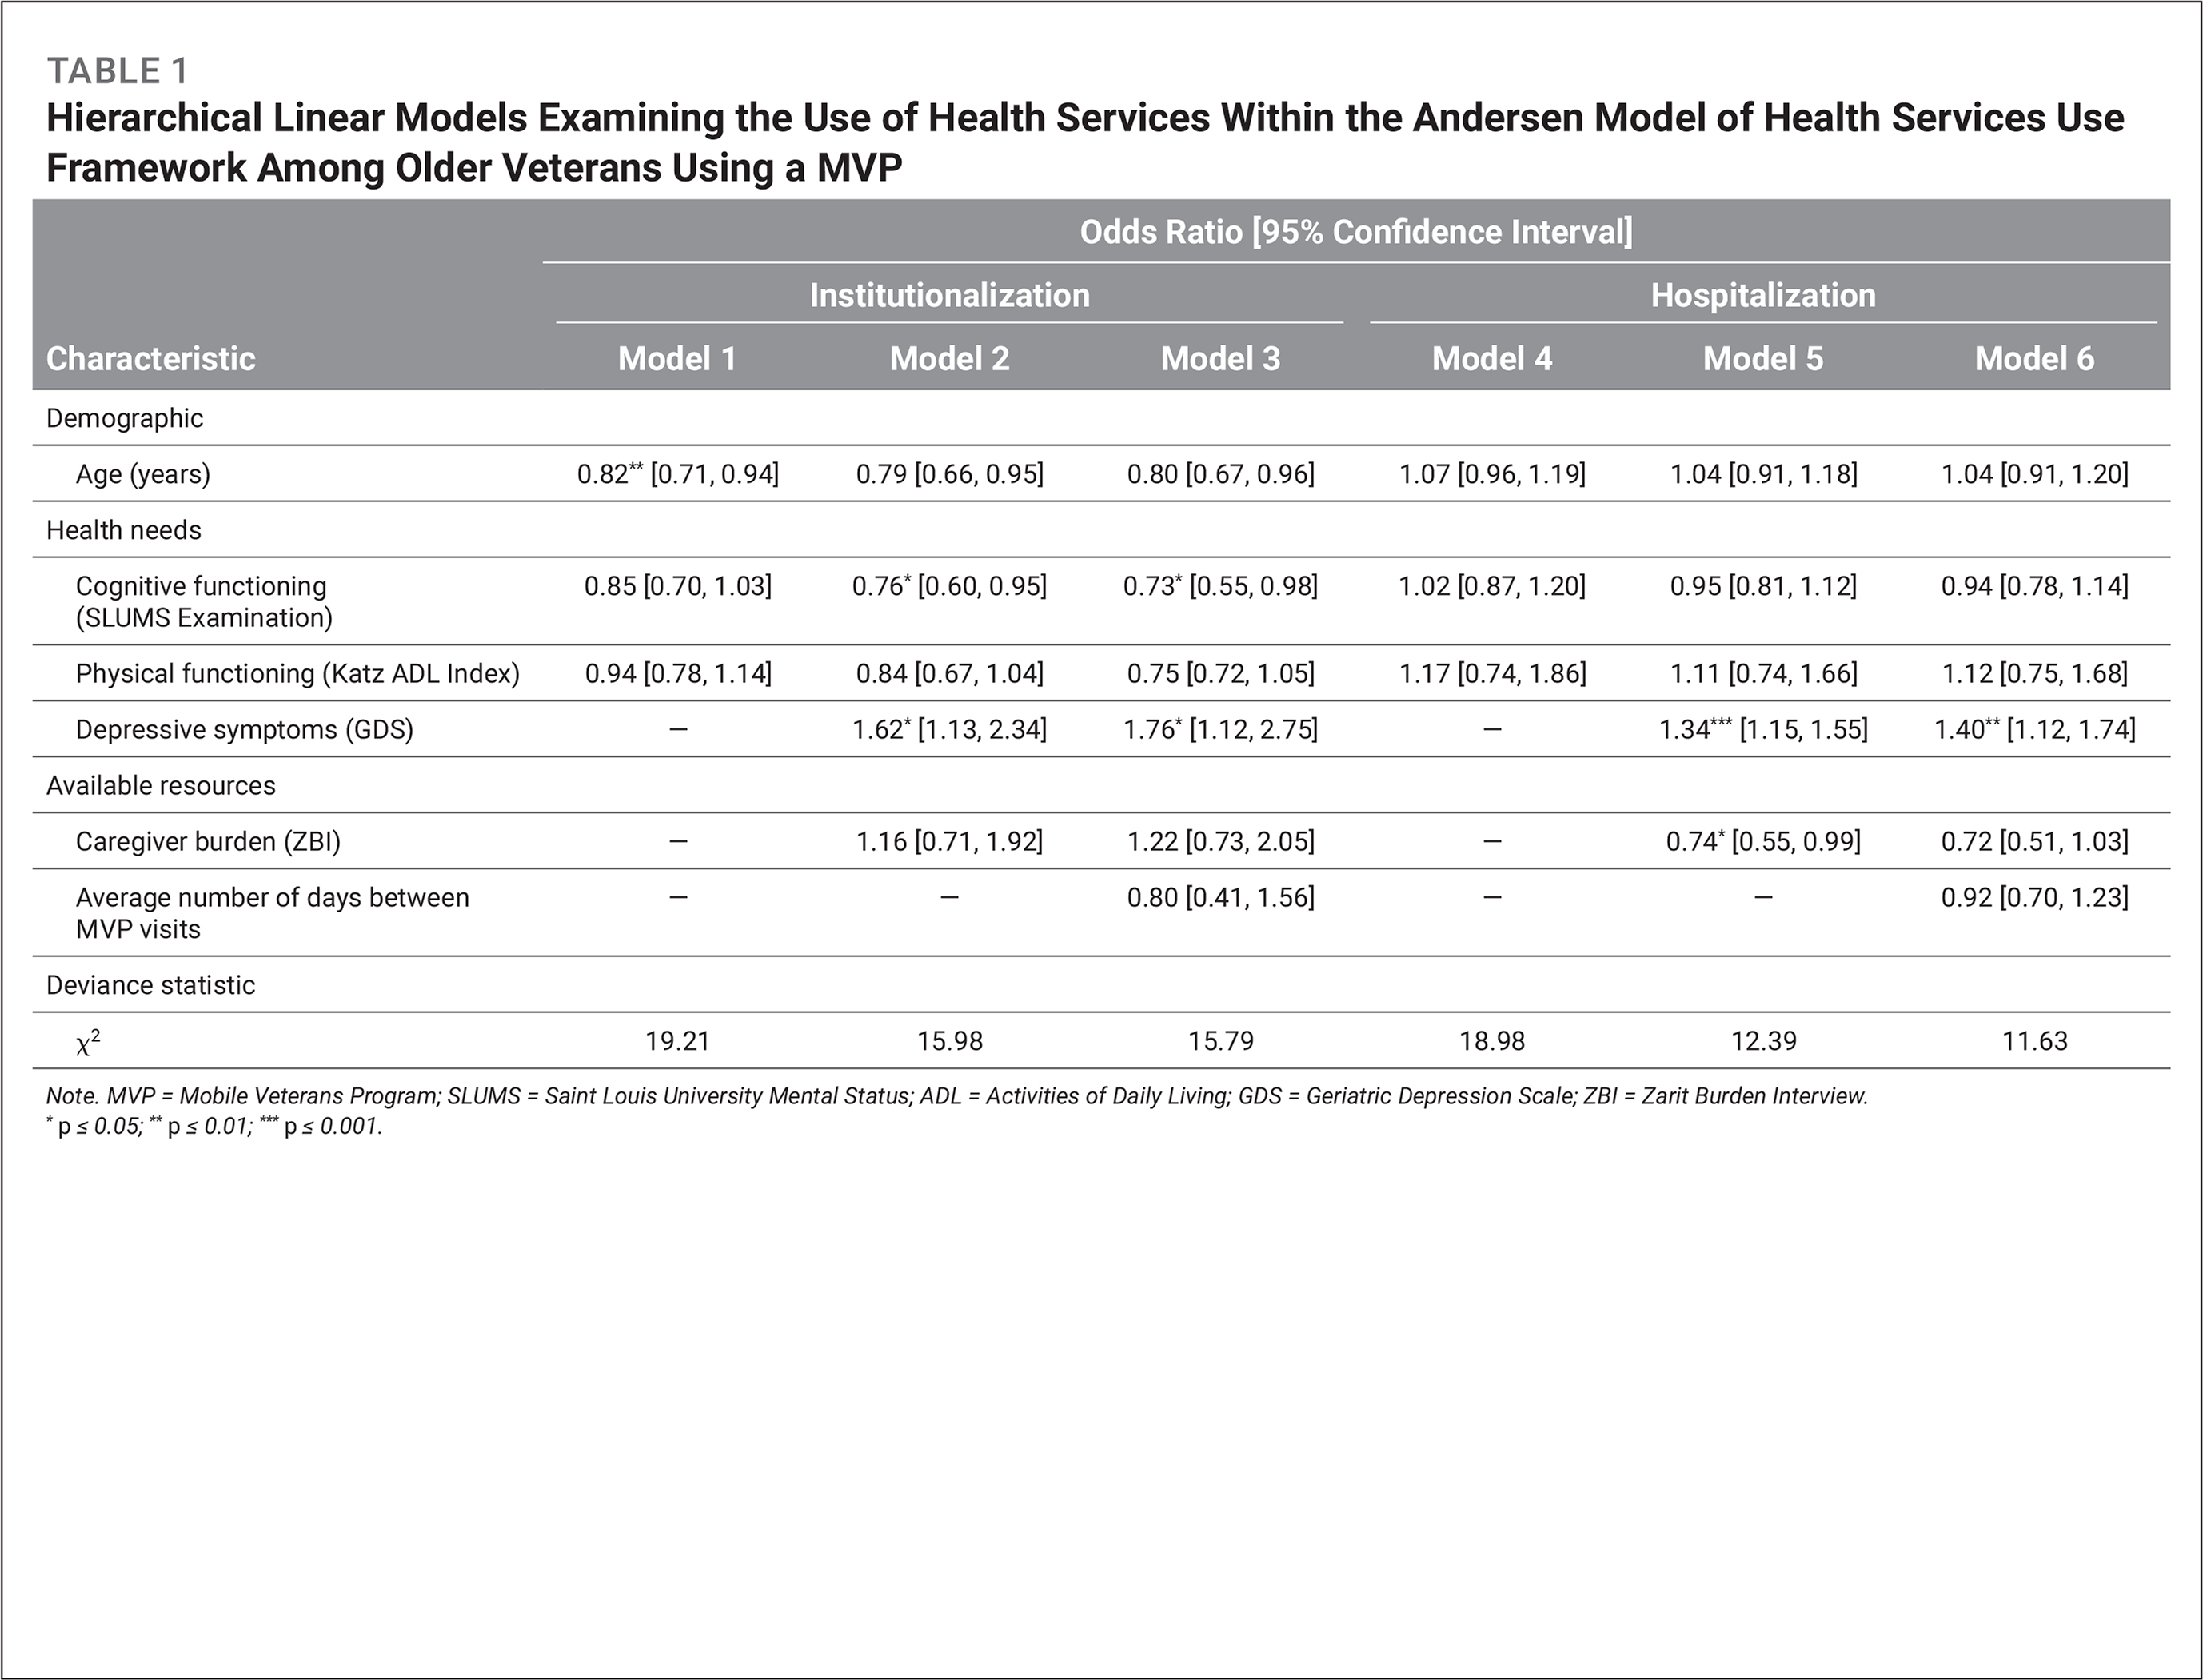 Hierarchical Linear Models Examining the Use of Health Services Within the Andersen Model of Health Services Use Framework Among Older Veterans Using a MVP